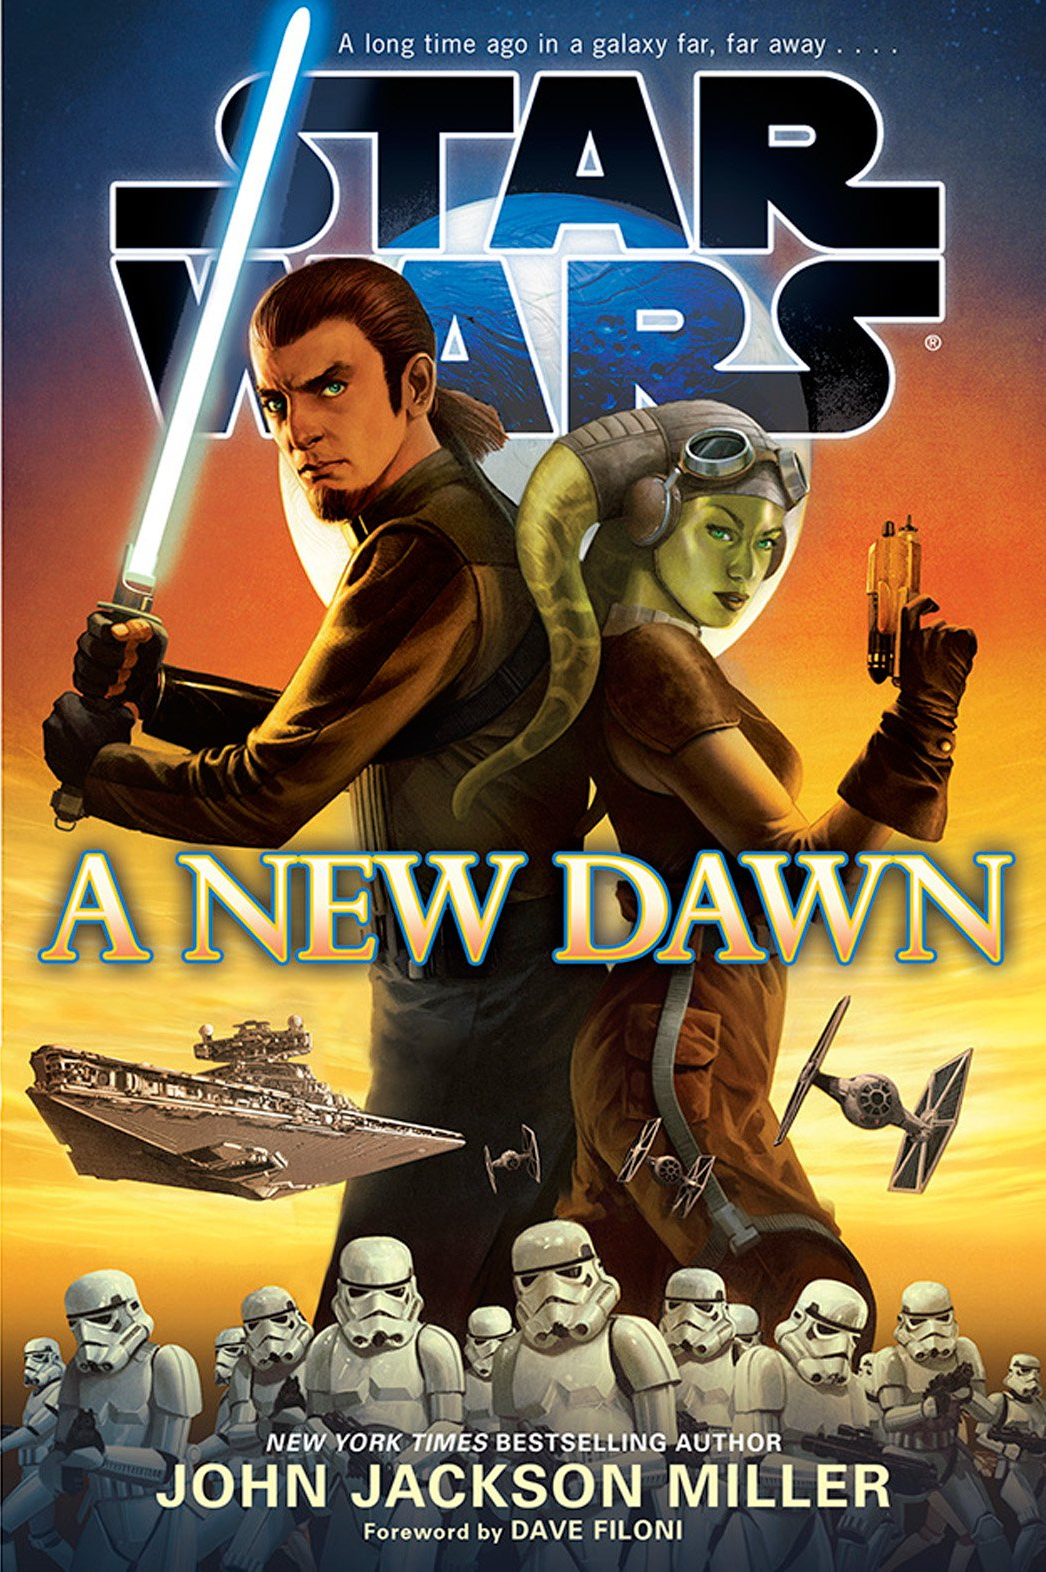 Star Wars - A New Dawn Cover